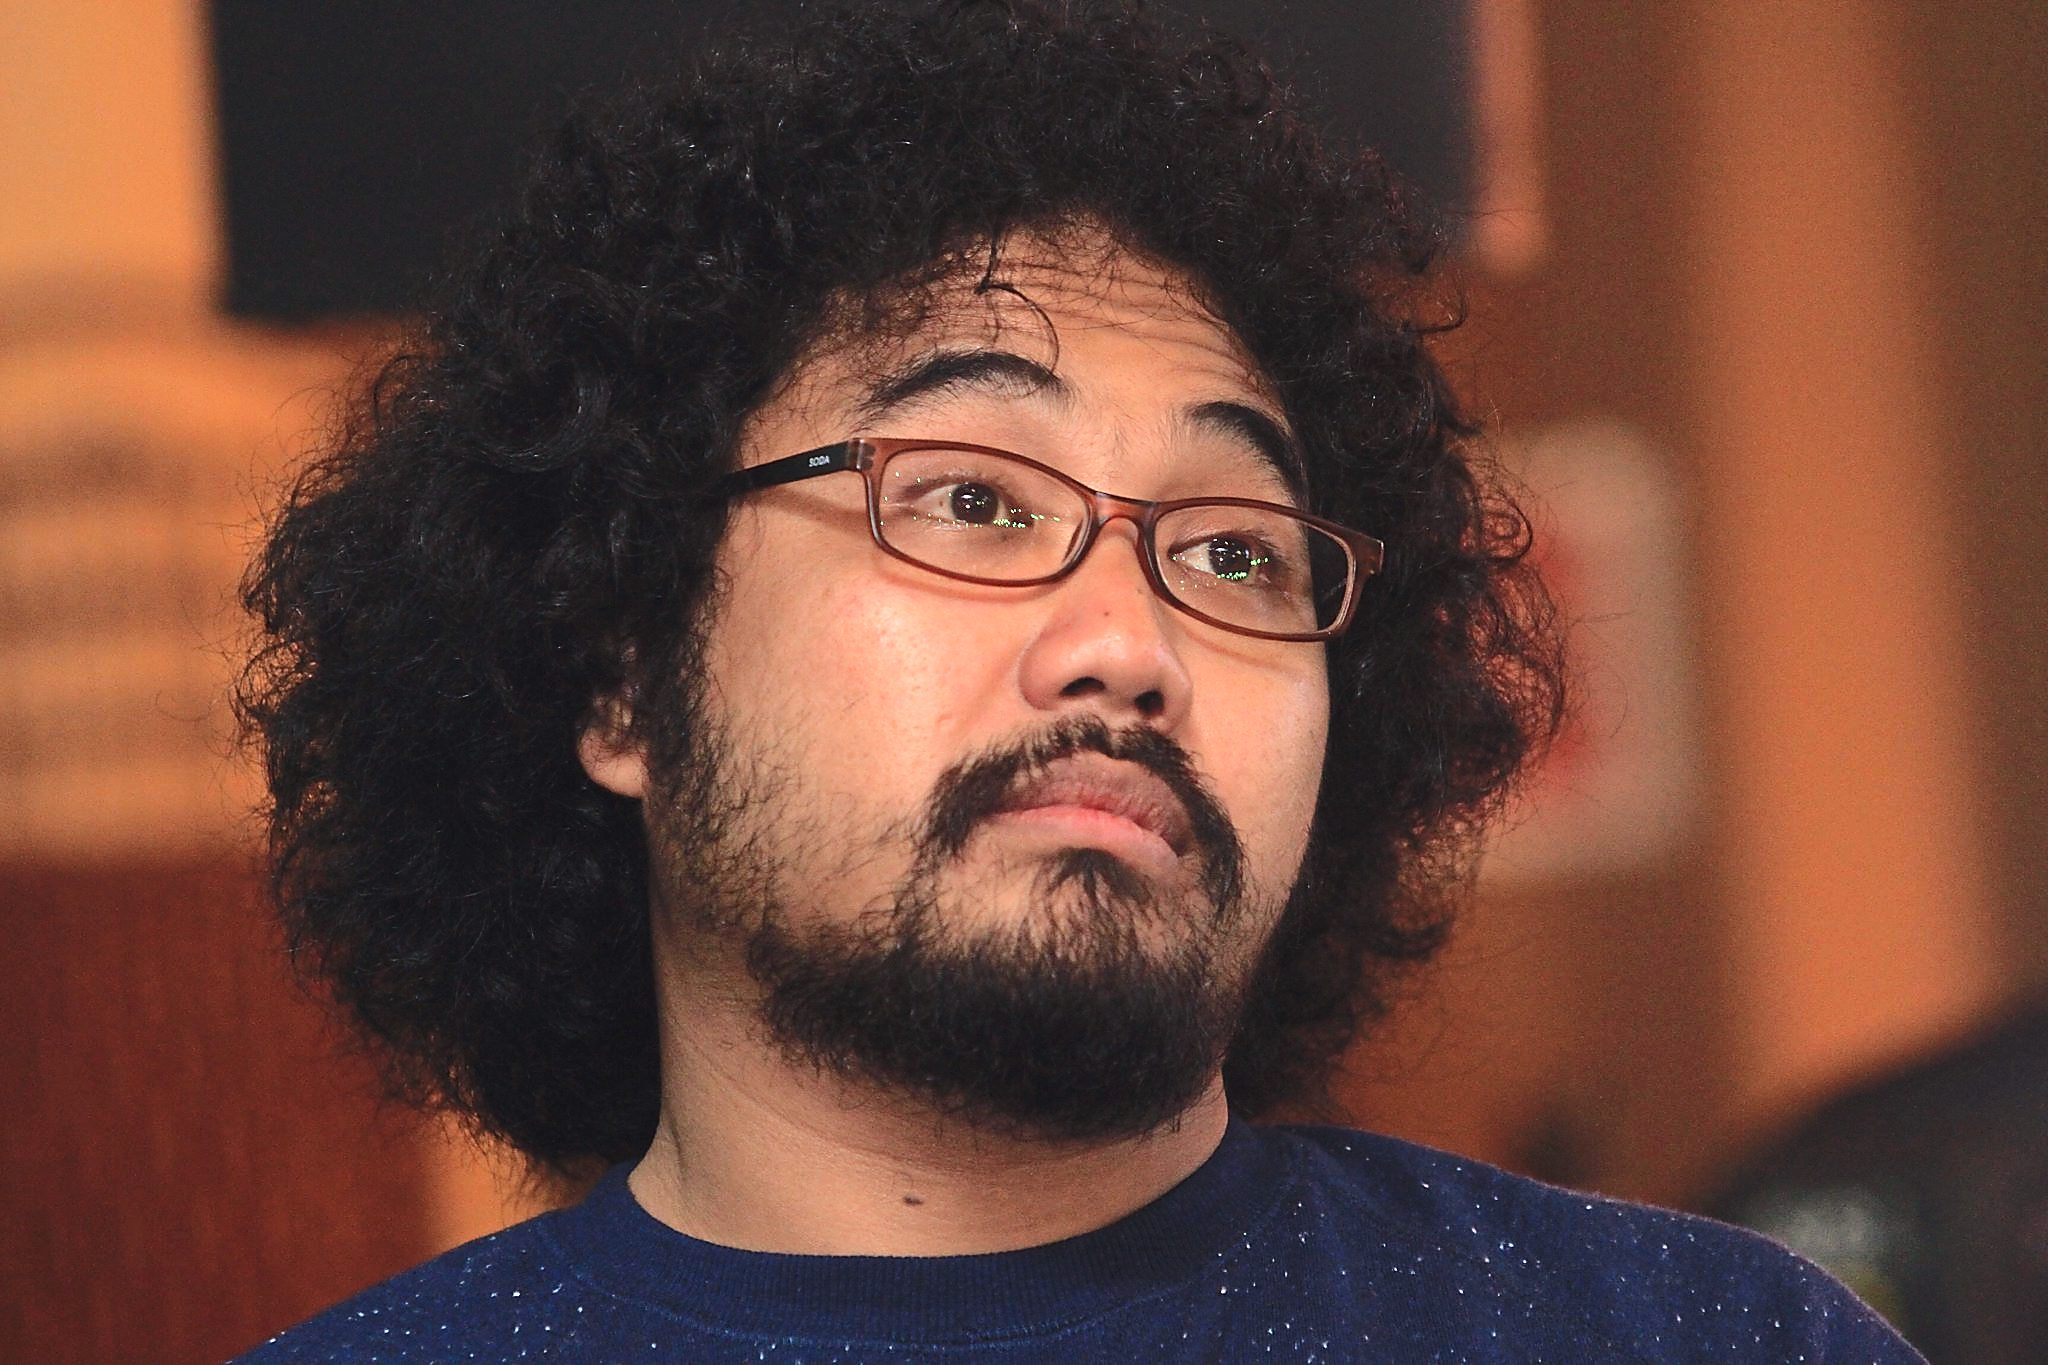 Comedian Johan Raja Lawak is not amused by Facebook...and neither are his kids.